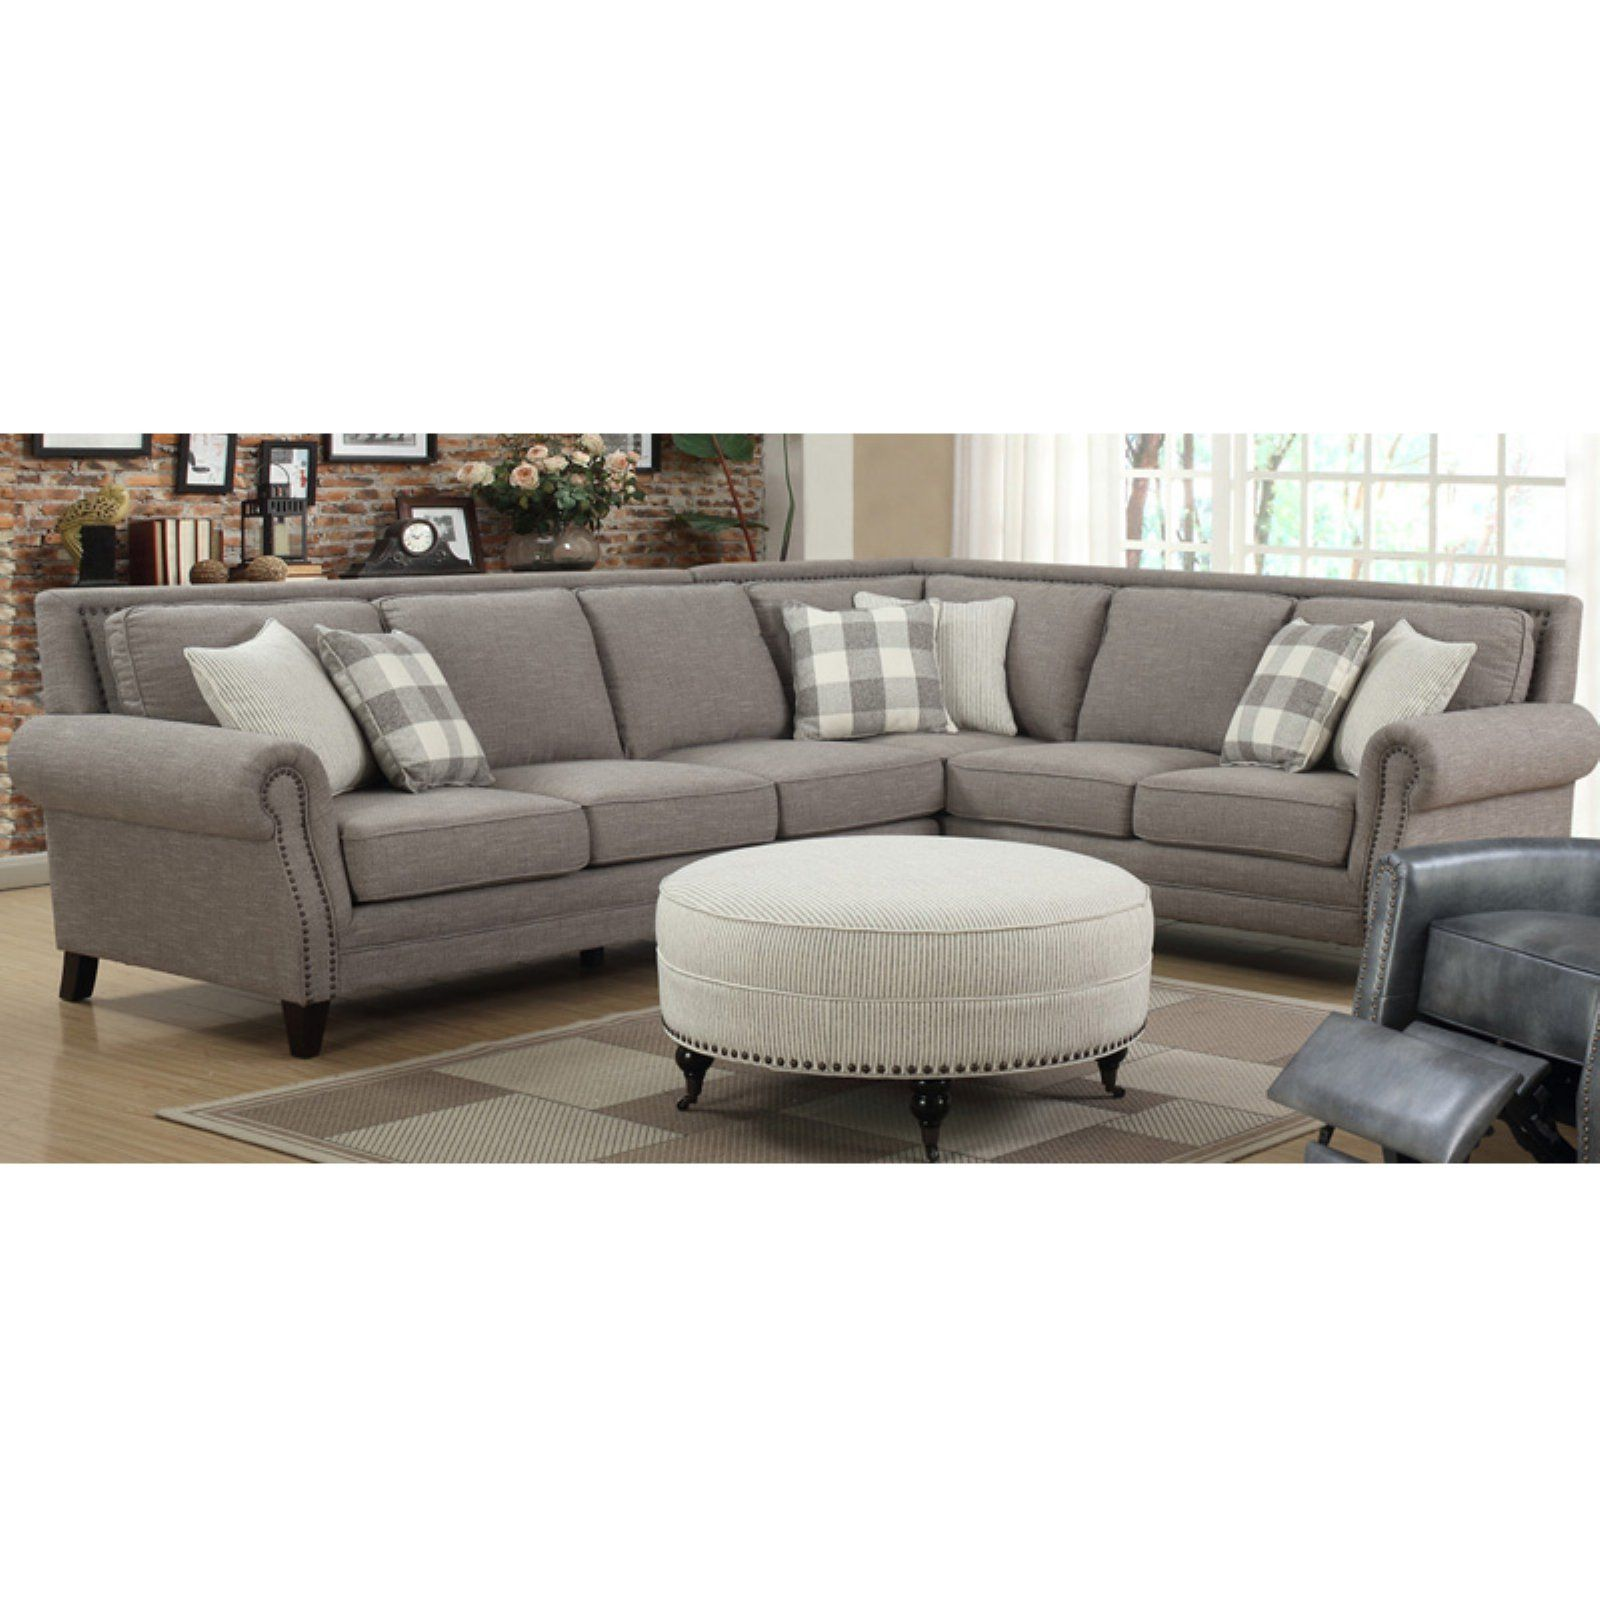 Emerald Home Willow Creek 2 Piece Sectional Sofa Nailhead